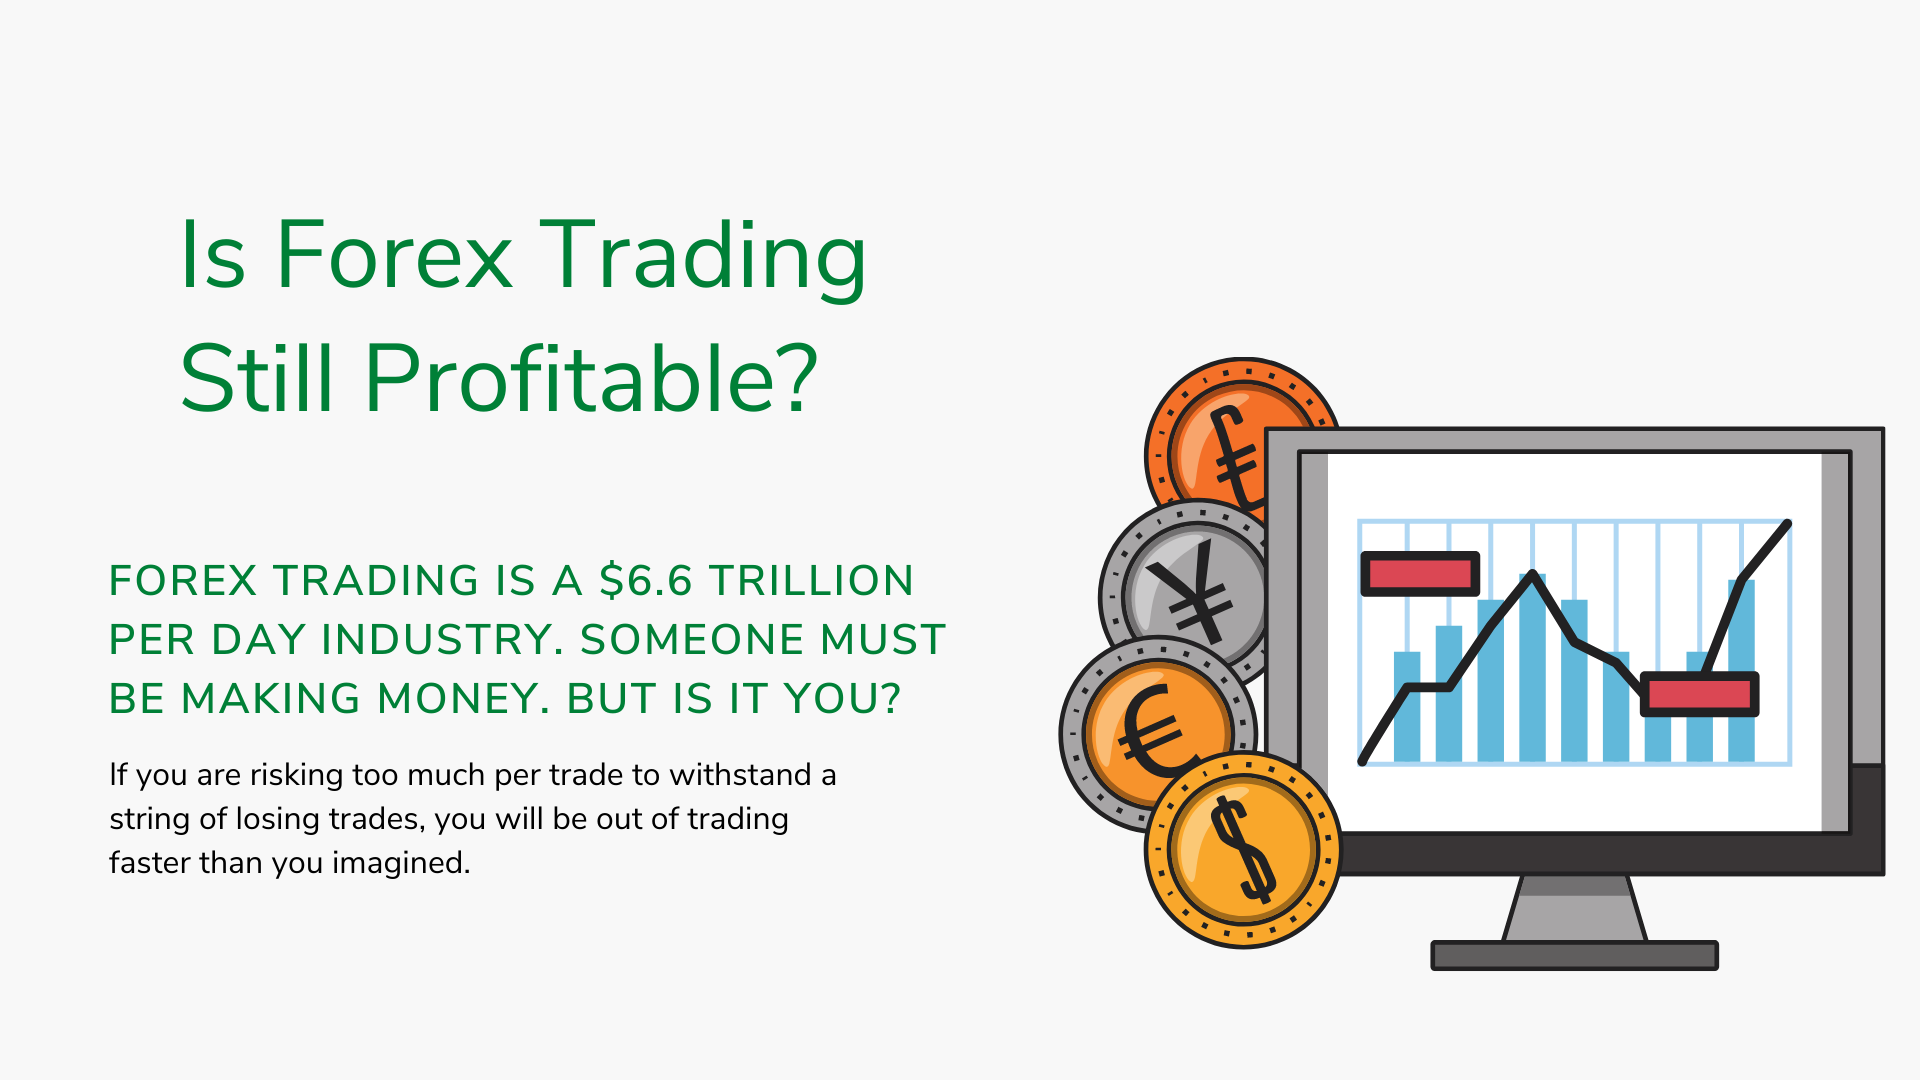 is forex trading still profitable